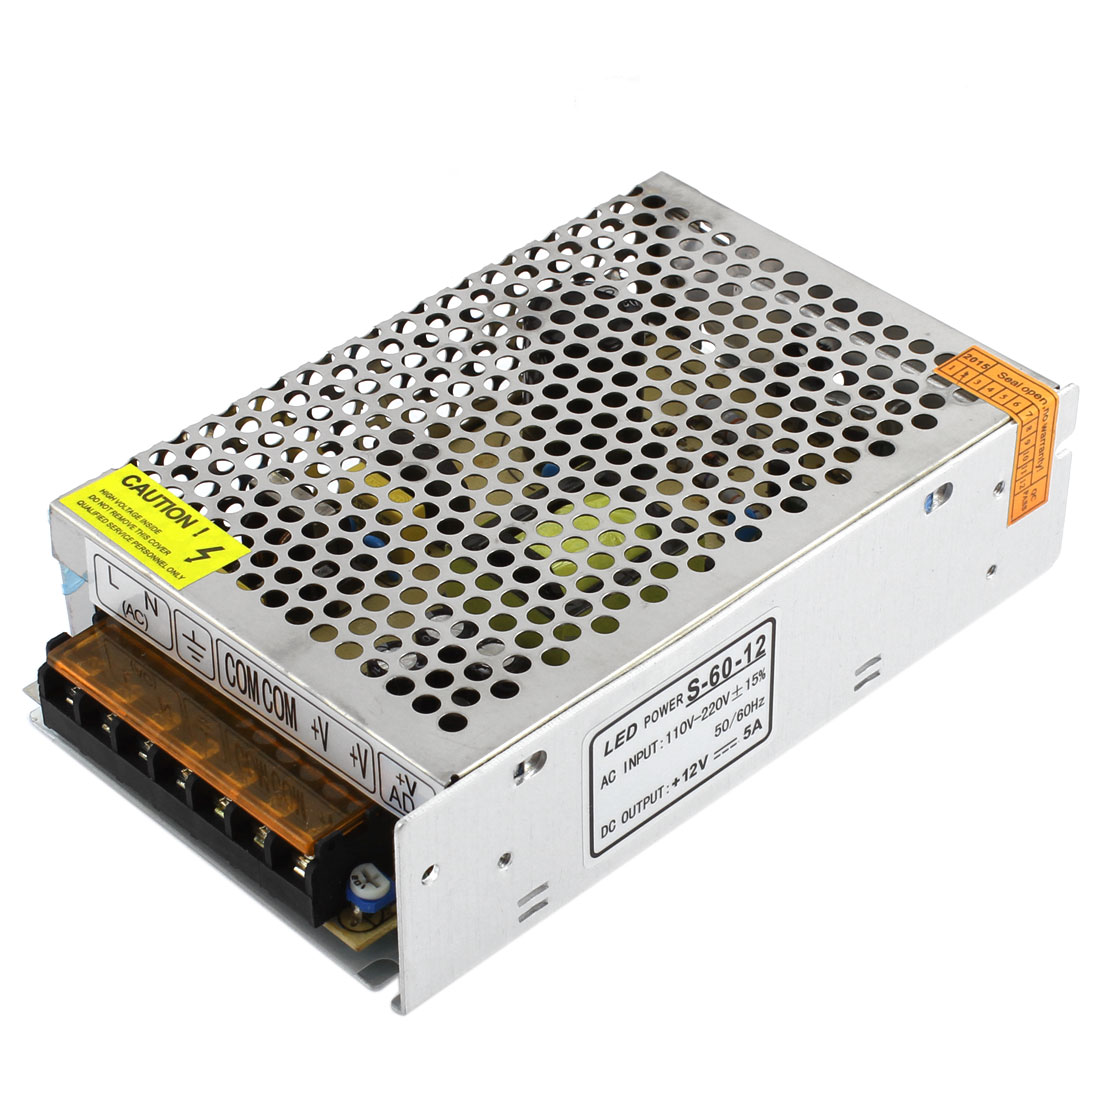 AC 110-220V DC 12V 5A Switching Power Supply Driver for LED Light